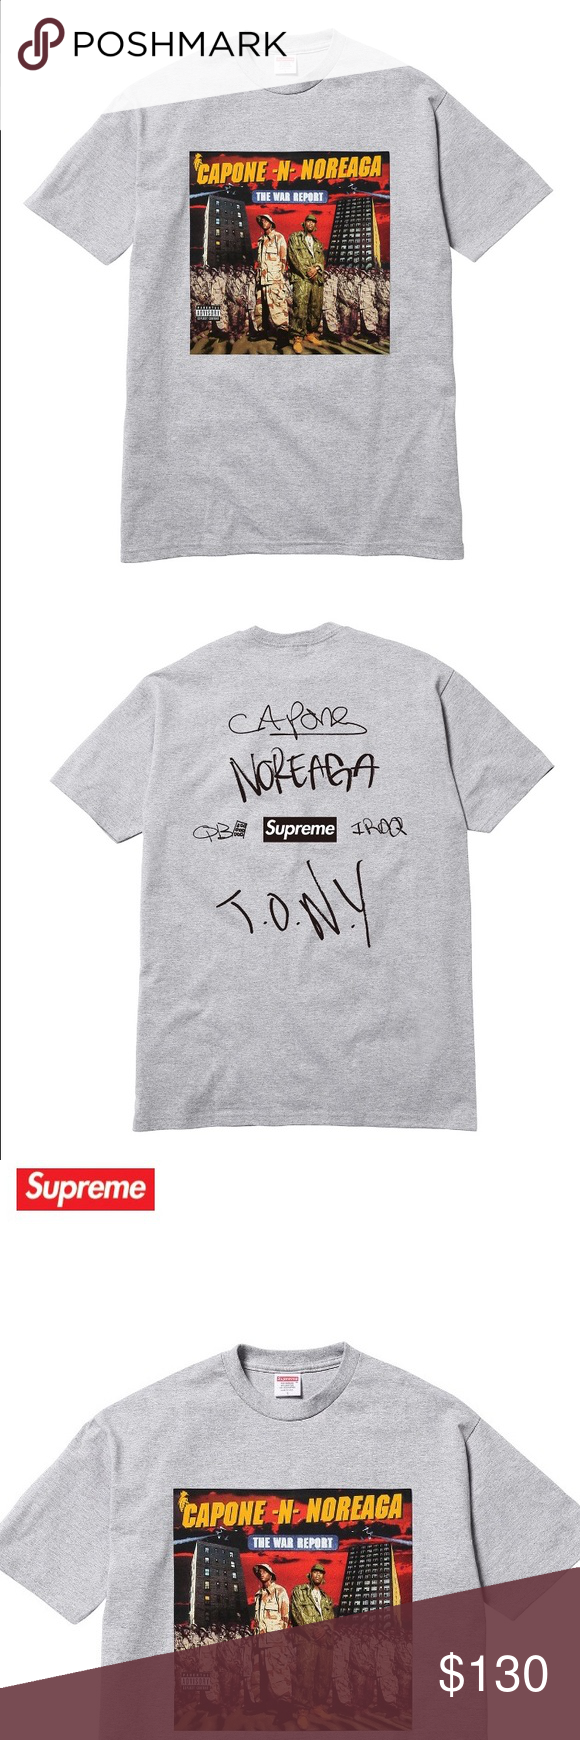 569639c77 Supreme Cnn war report tee FW16 supreme war report Capone n noreaga tee in  grey size medium has box logo on back nice shirt will post new pics when I  ...